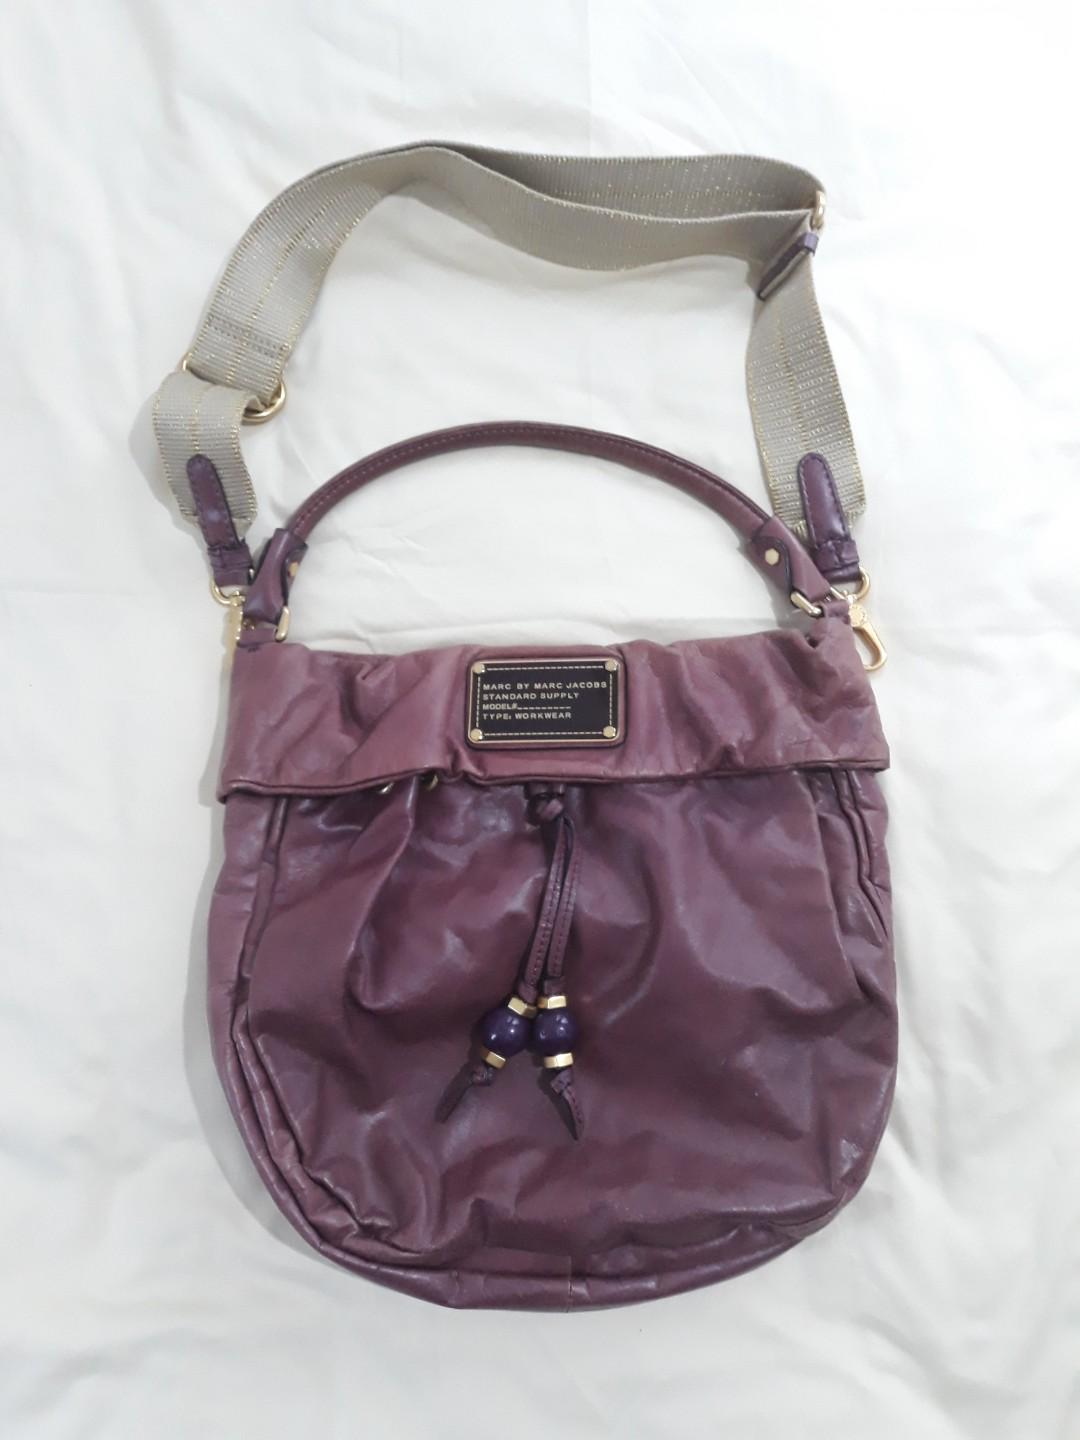 Authentic MARC BY MARC JACOBS classic Q hilier standard supply hobo bag